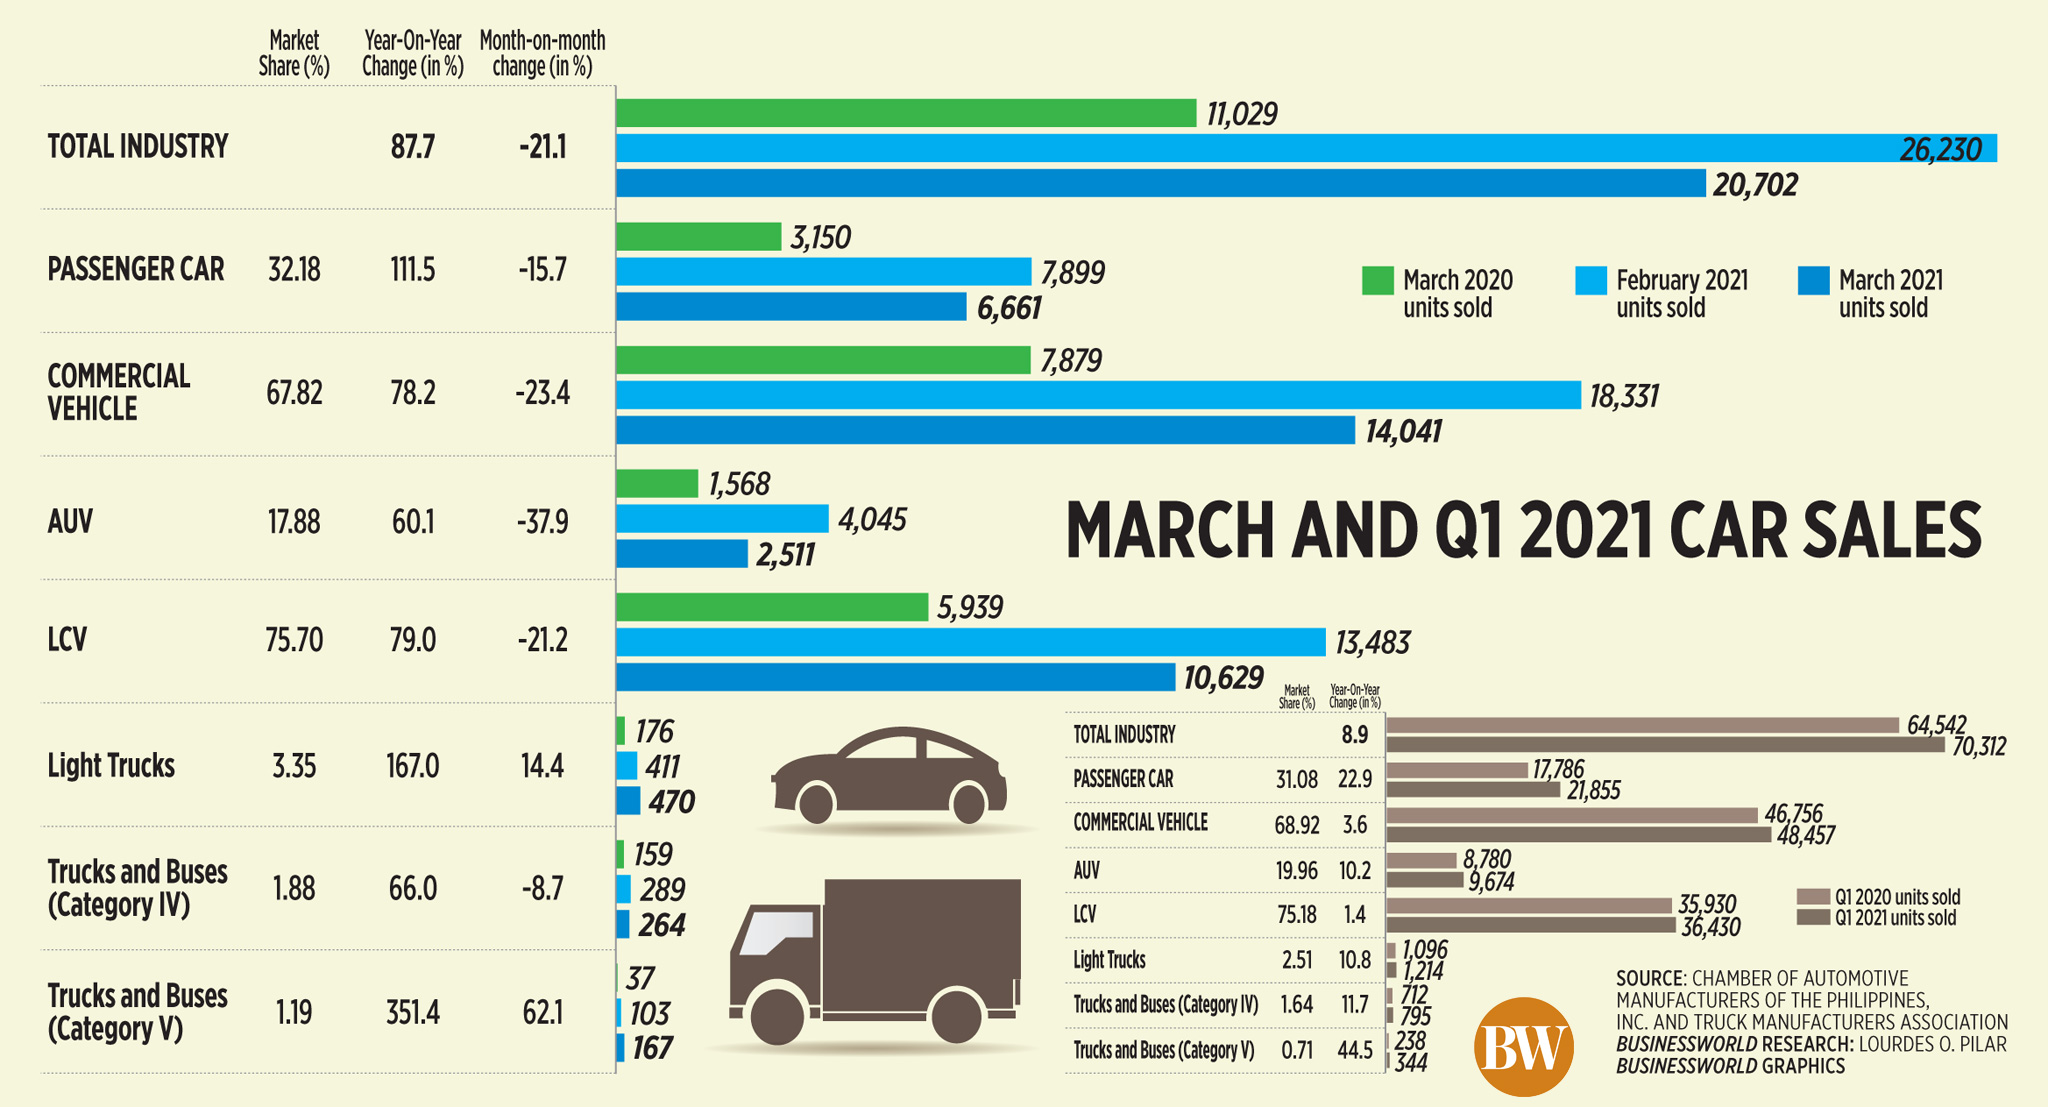 March and Q1 2021 car sales